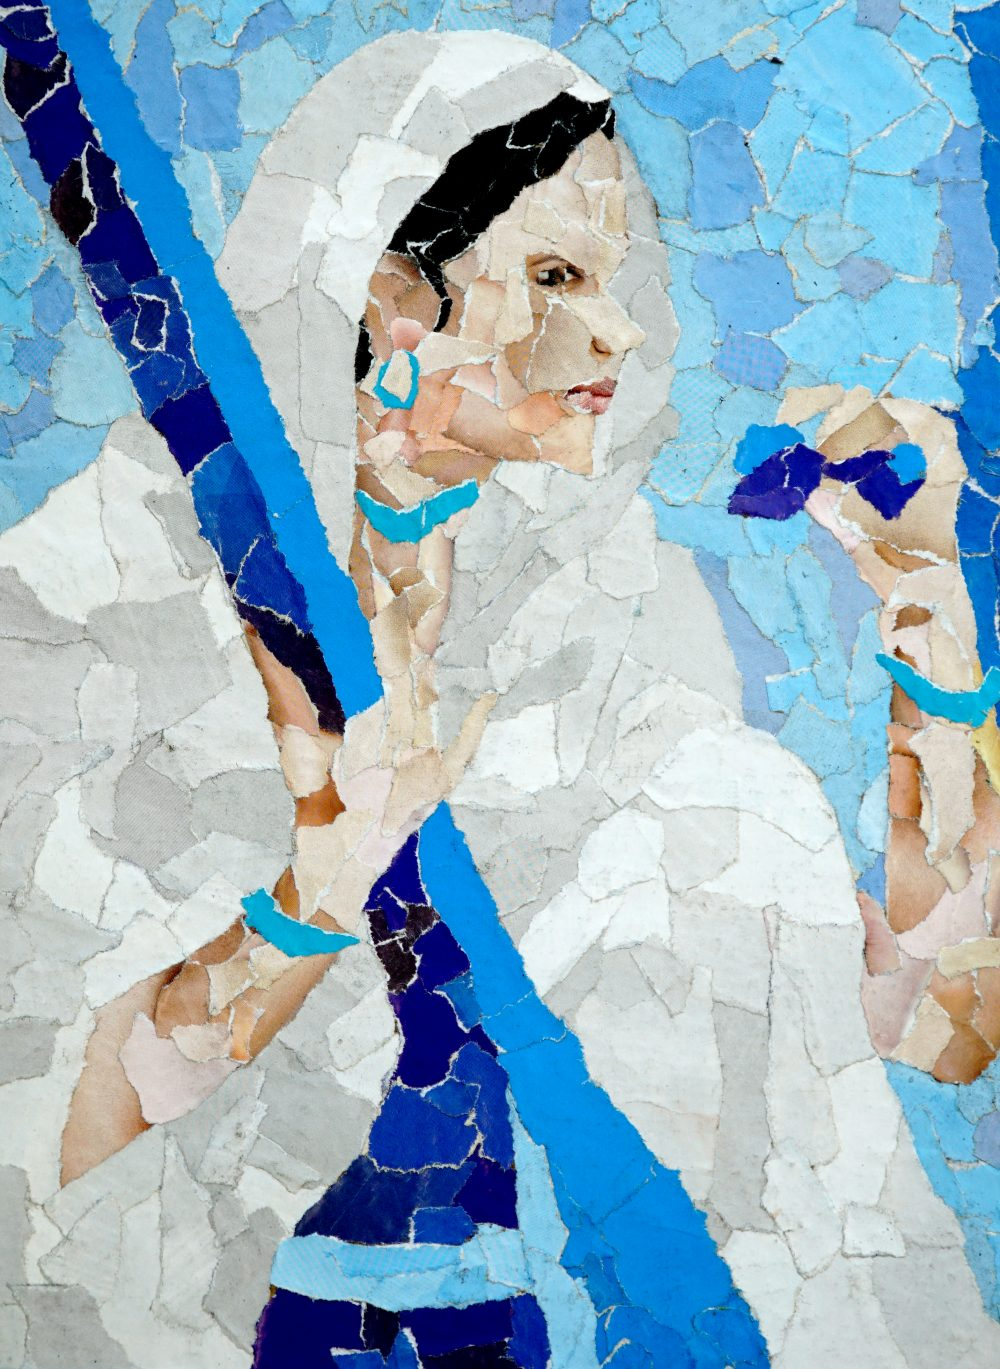 Meera Bai painting, collage art by young artist Tushar Sakpal, won silver medal in Khula Aasmaan art contest